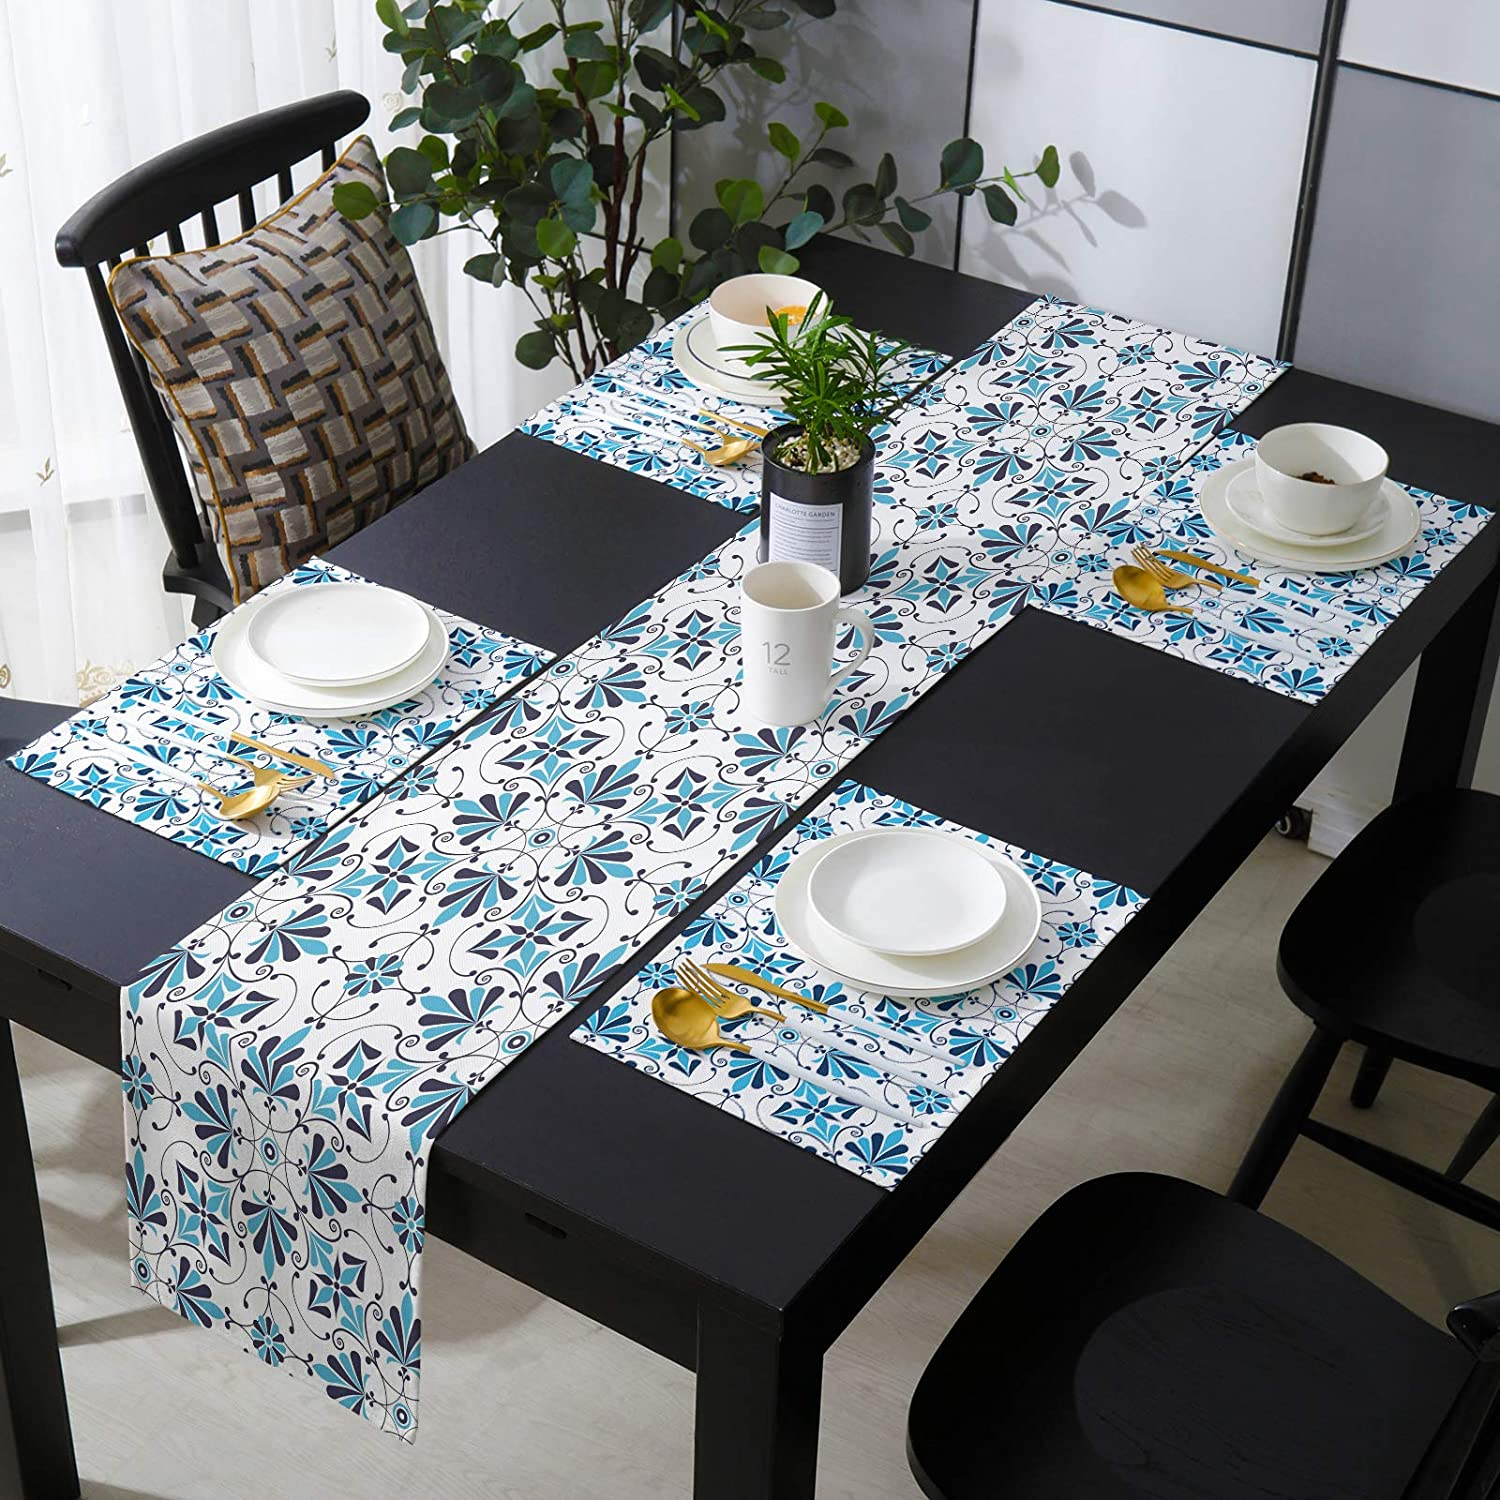 Table Boston Mall Runner and 4 Pieces Placemats Kitche Sales of SALE items from new works Linen Cotton 13